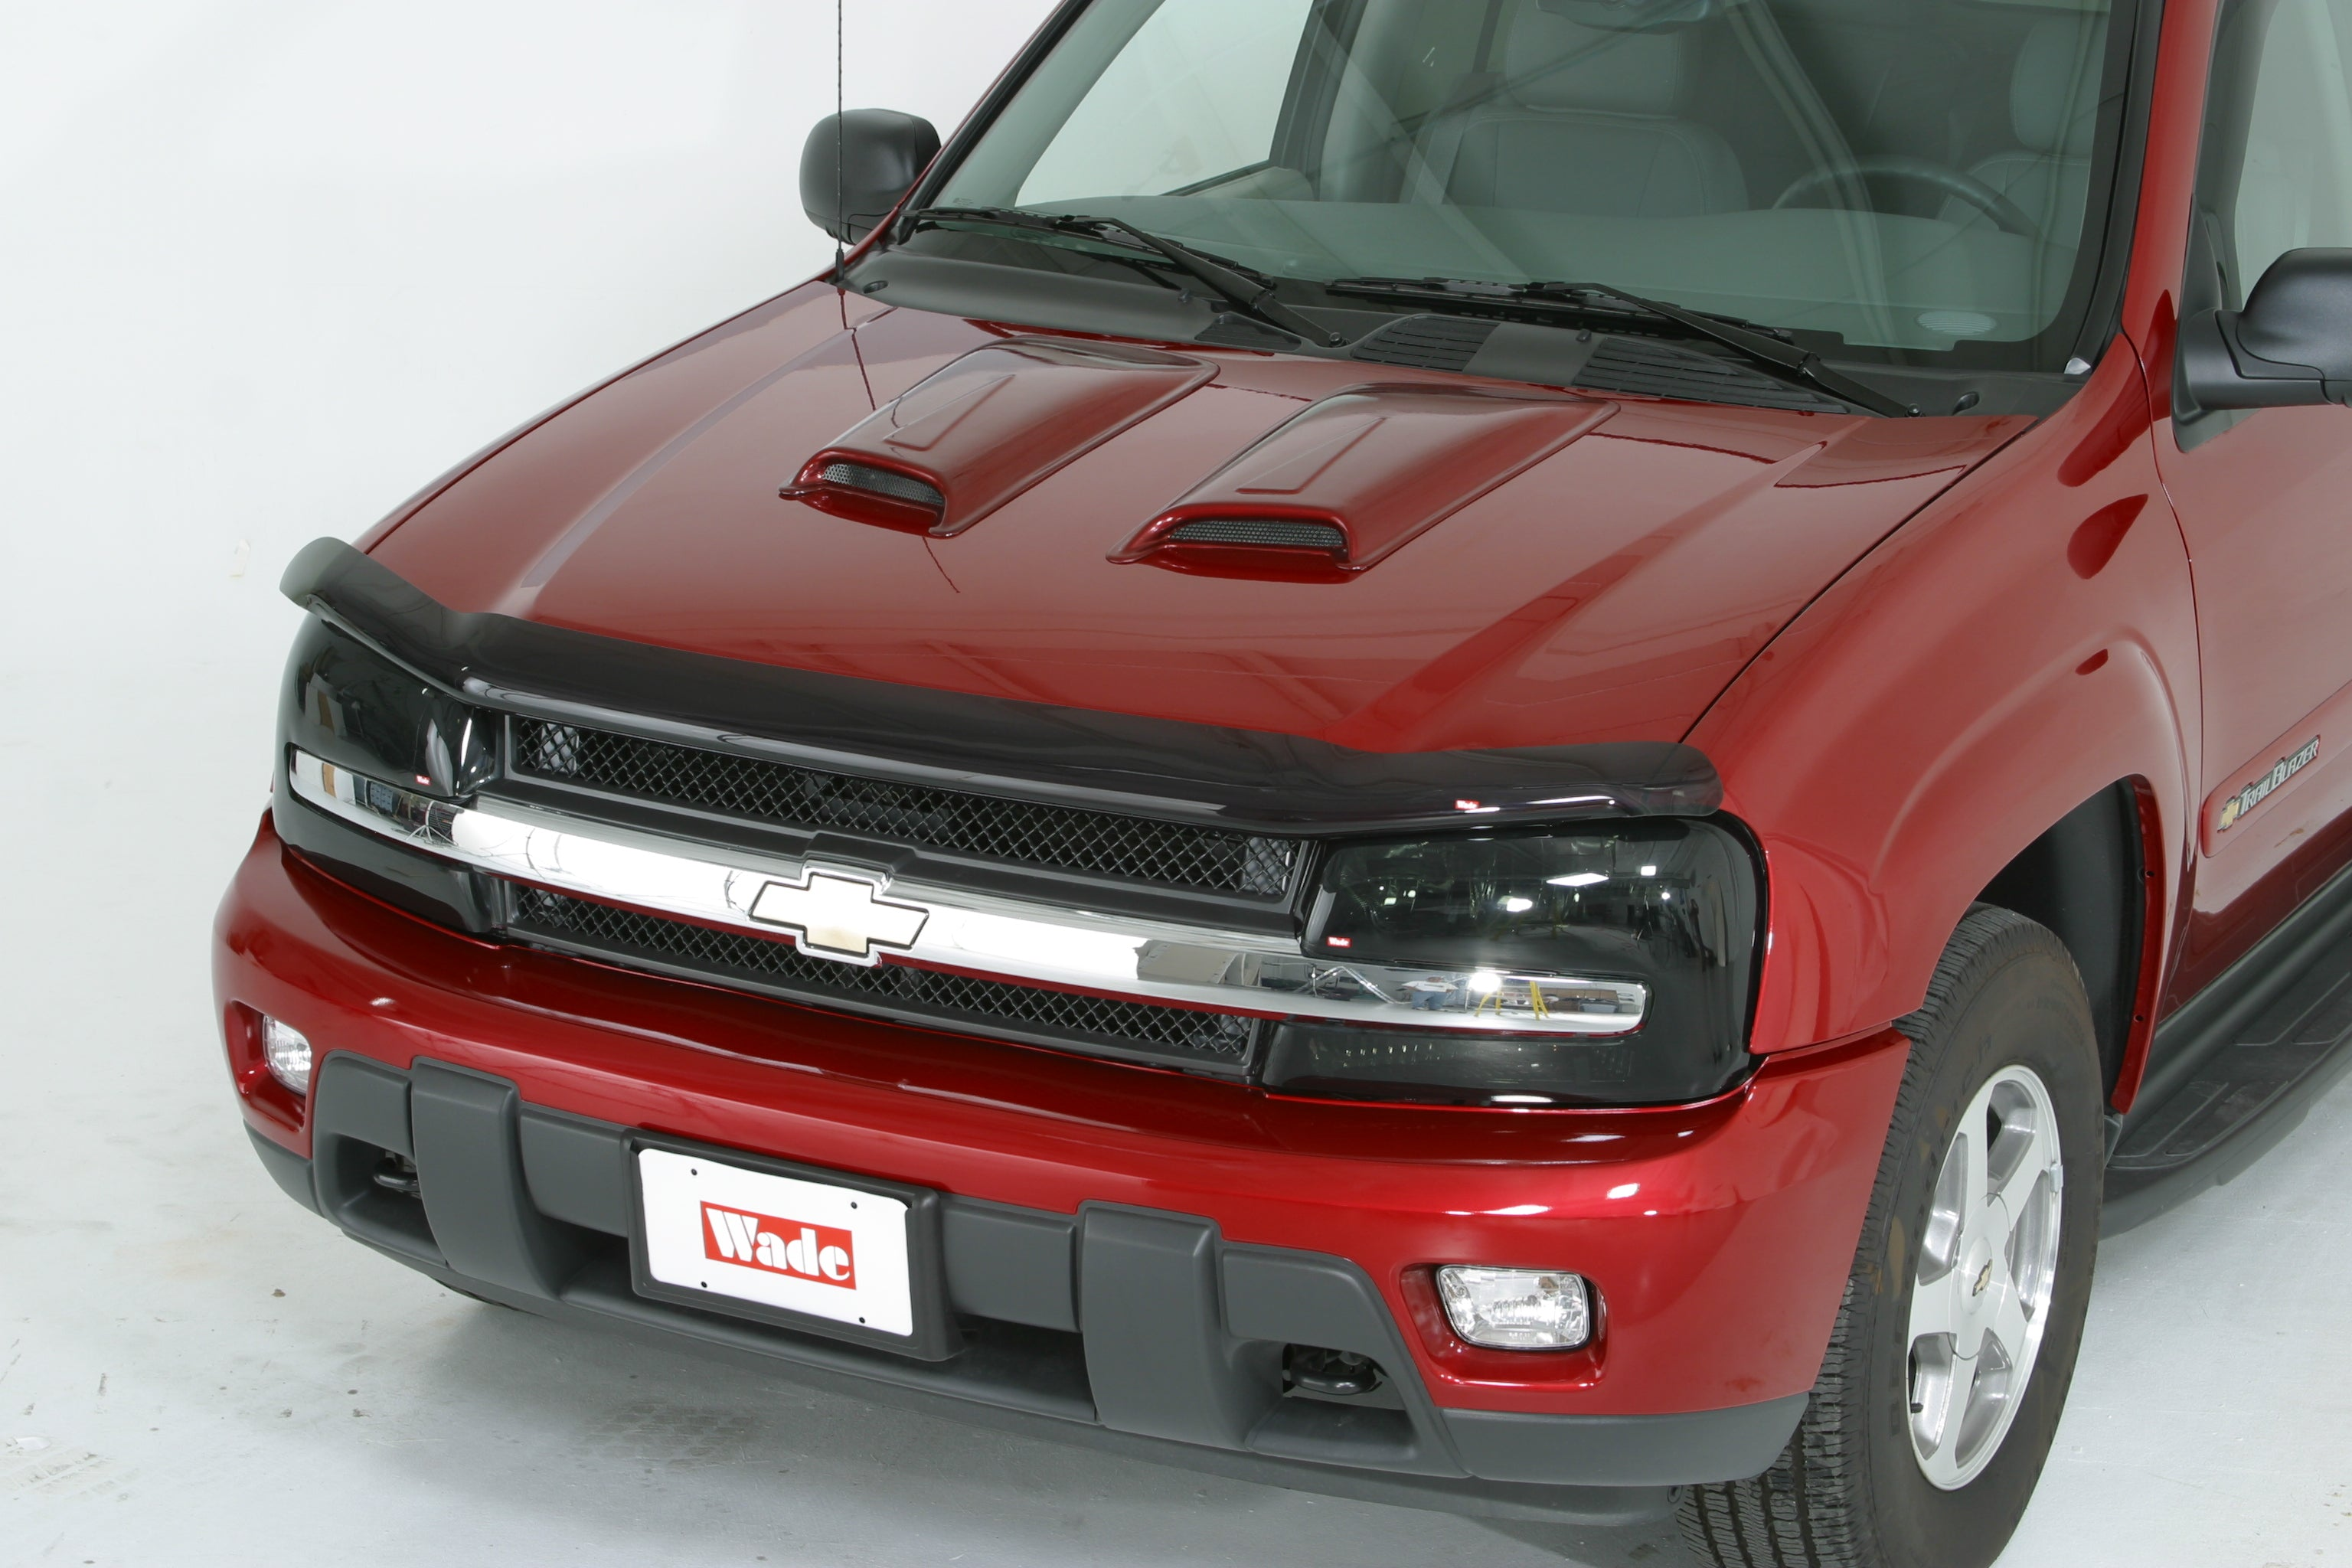 1990 Nissan Pickup 2WD (recessed light) Head Light Covers